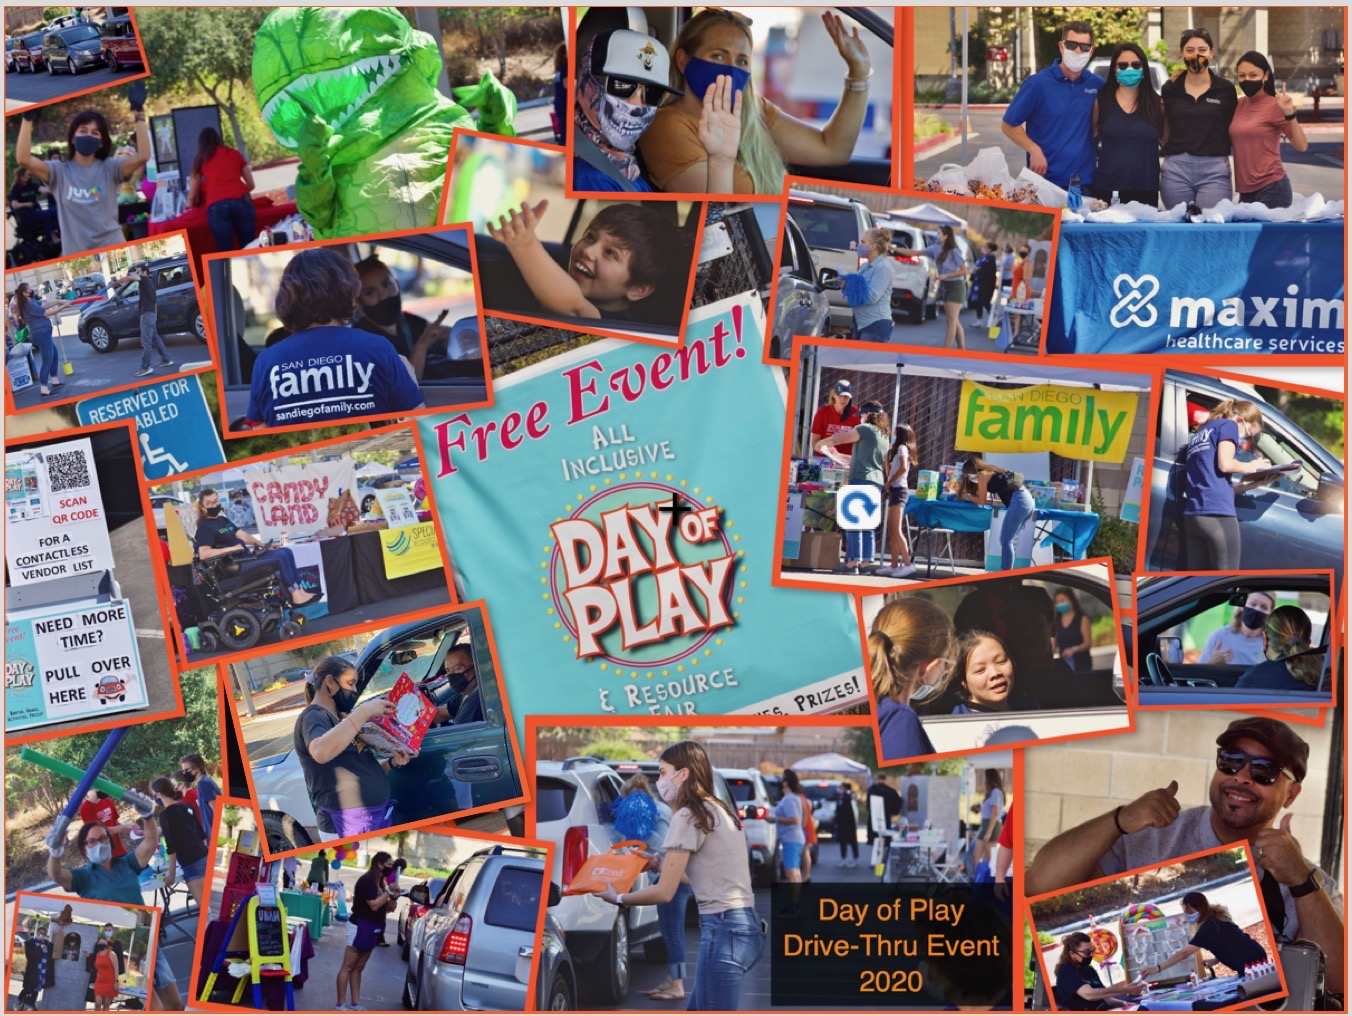 Success at the All Inclusive Day of Play Drive-Thru Event 2020